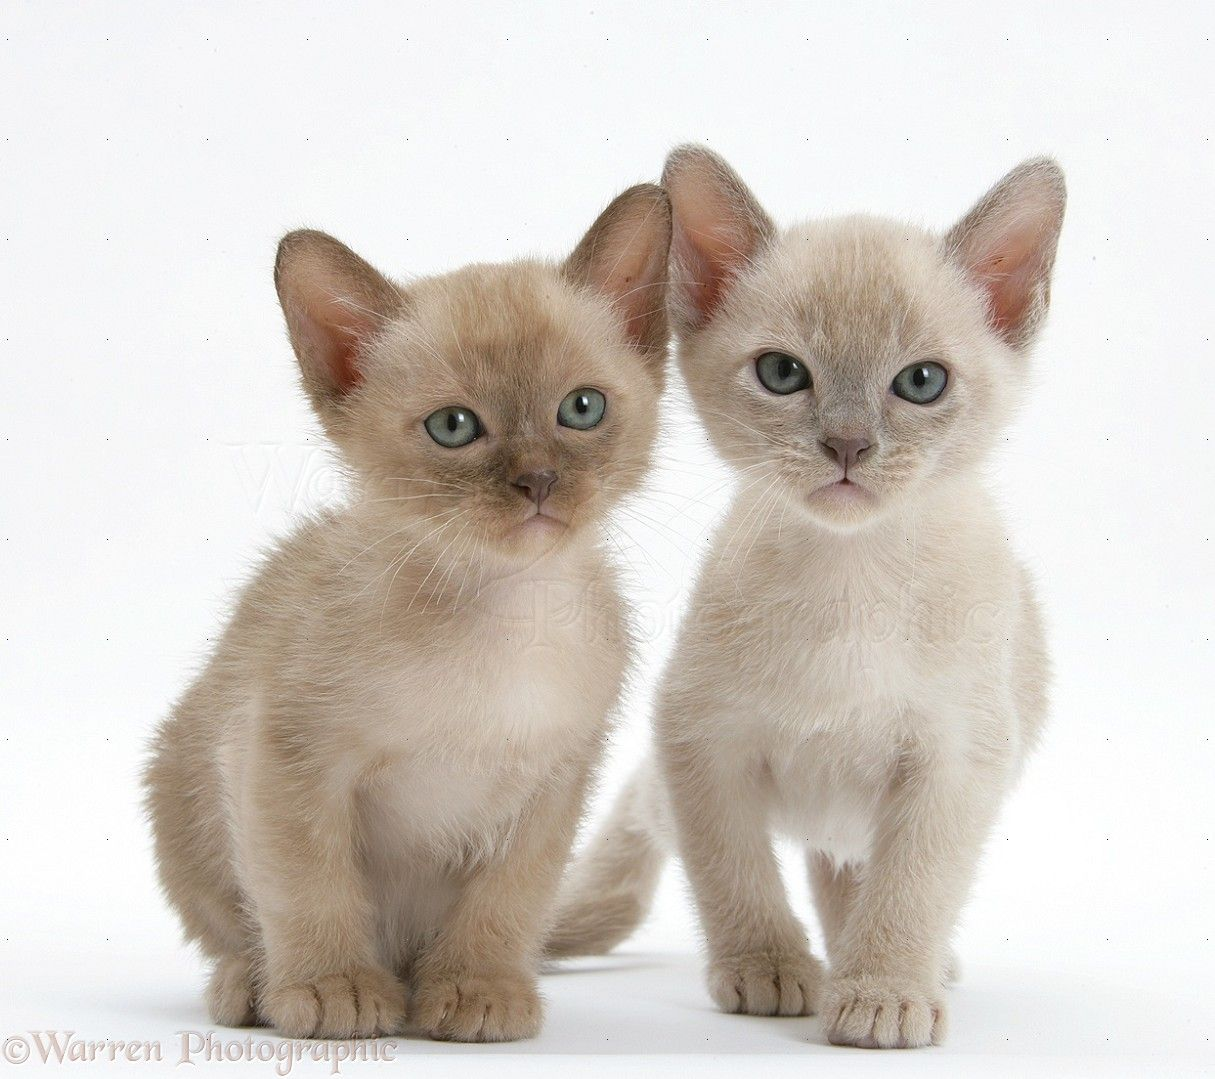 Cat Photos Google Search Burmese Kittens Burmese Cat Cat Breeds